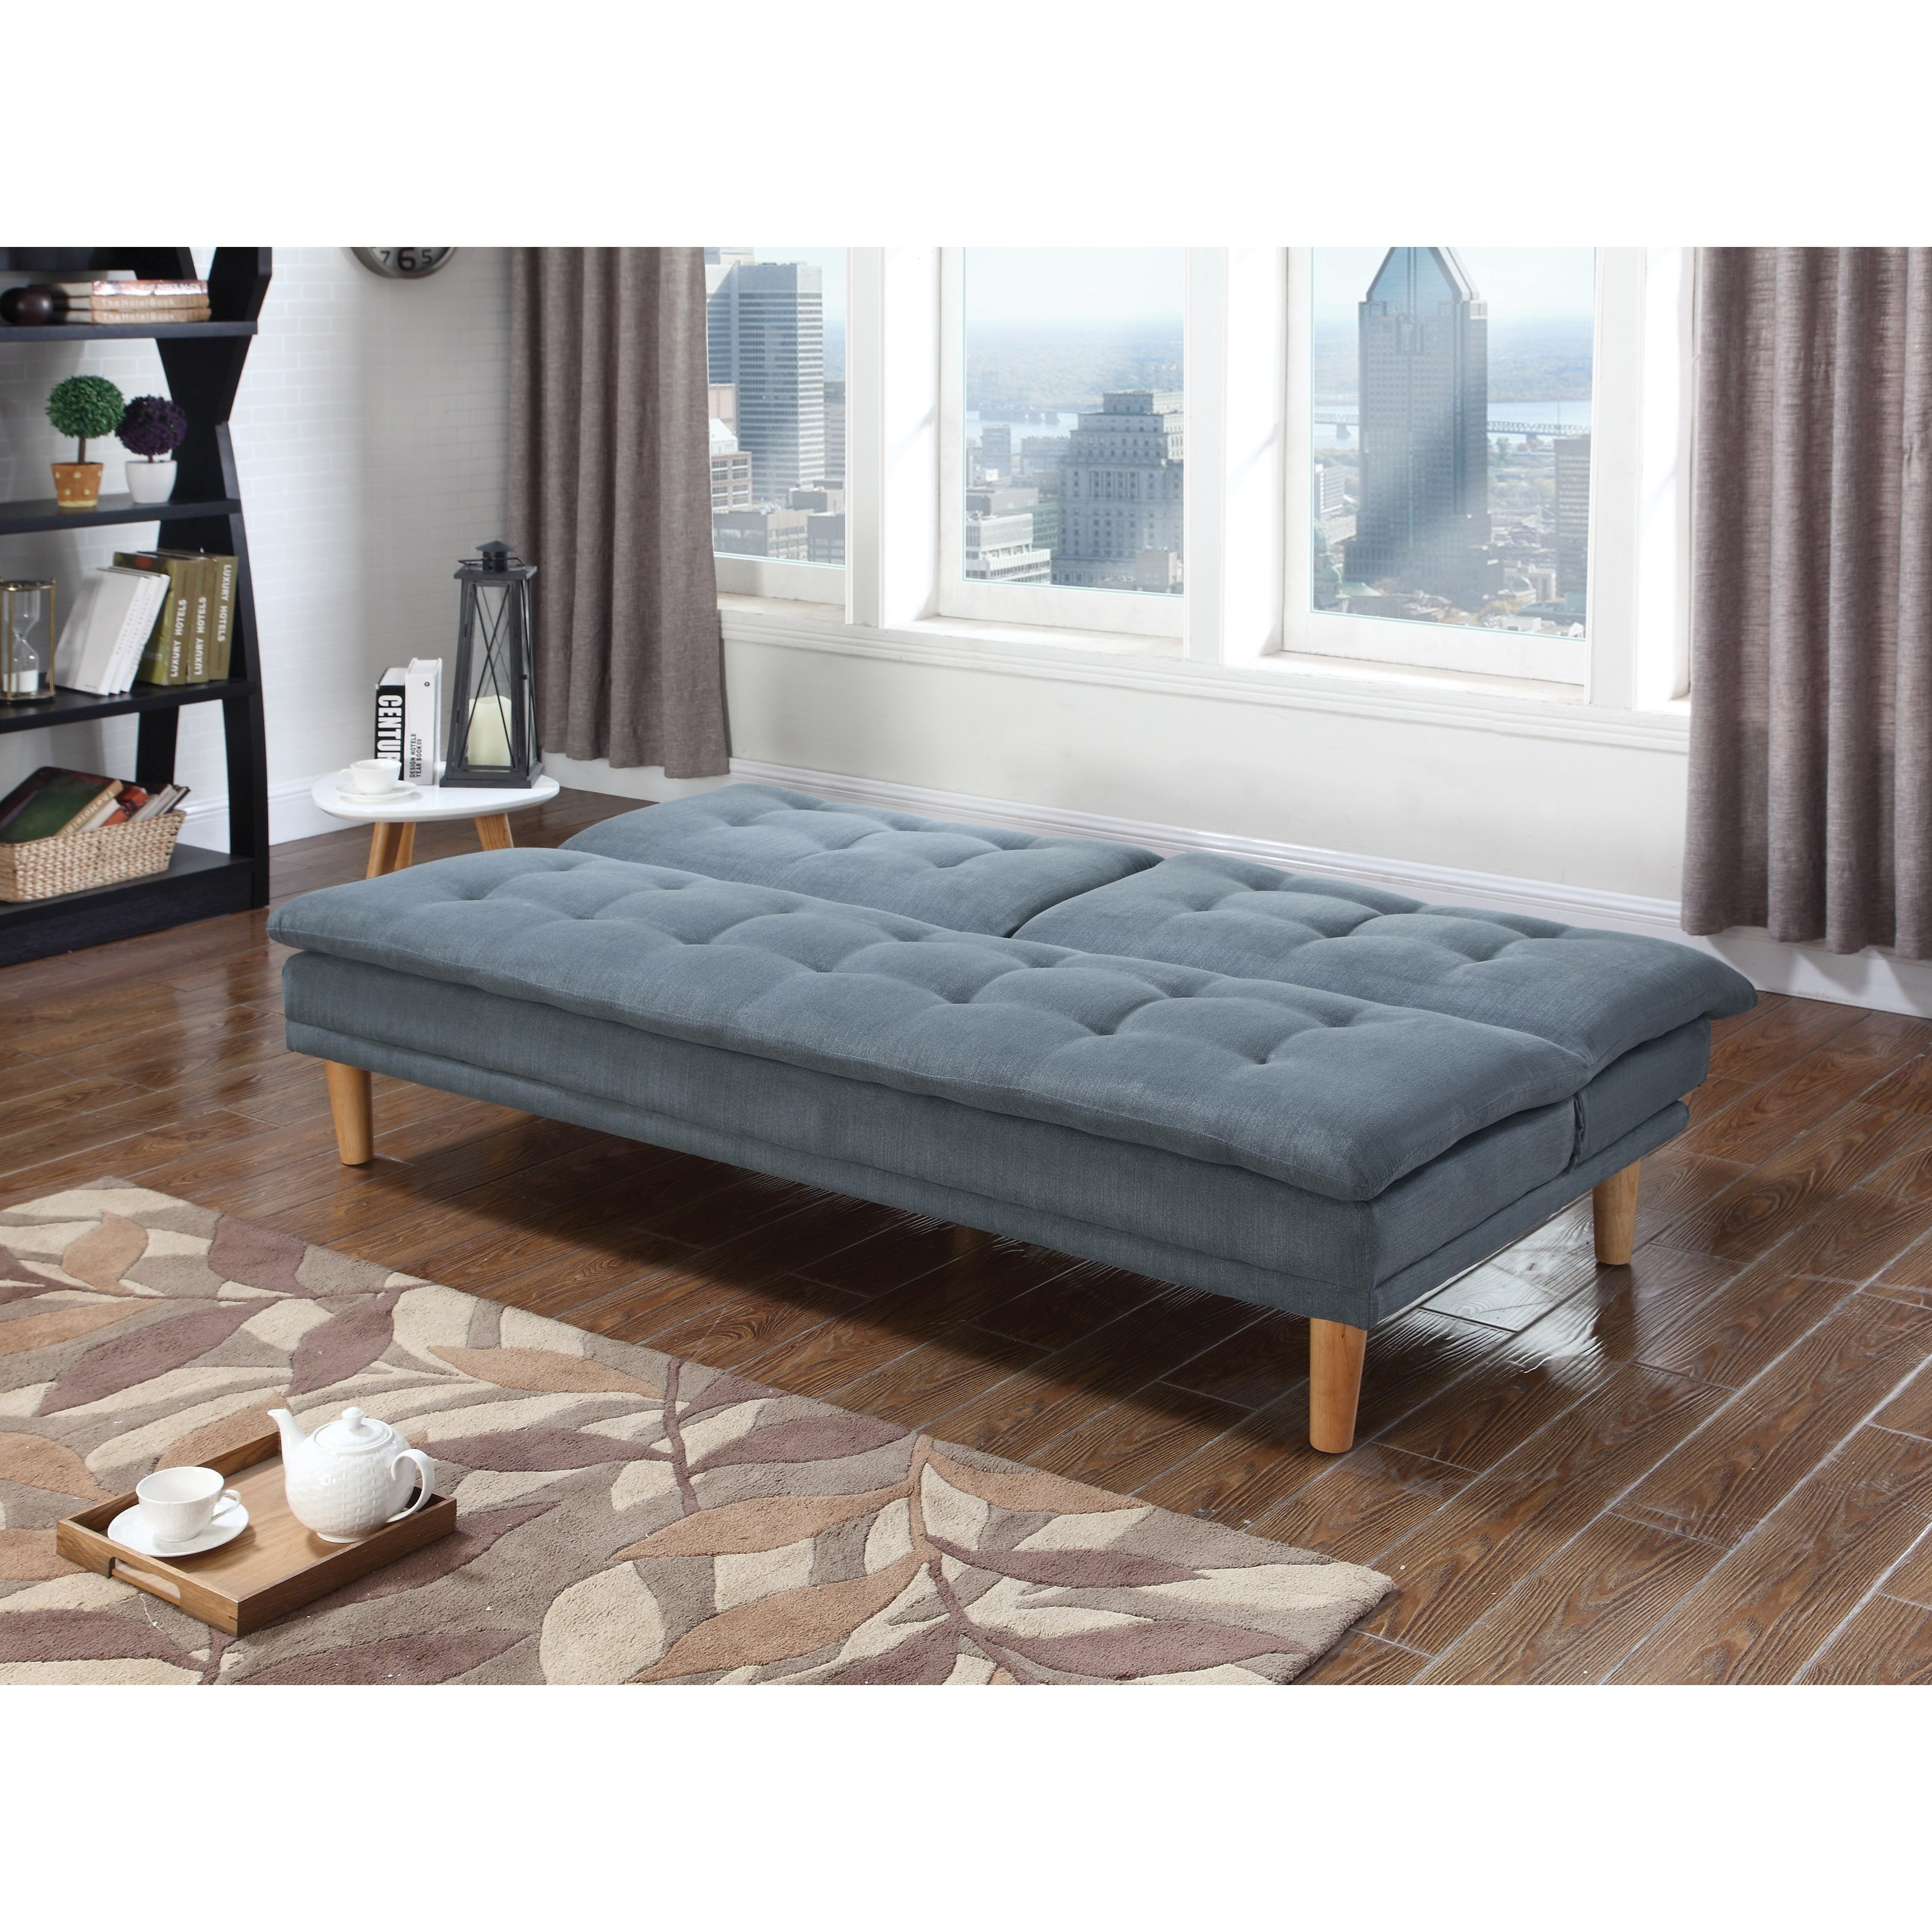 coaster futons sofa bed with button tufting coaster futons sofa bed with button tufting   miskelly furniture      rh   miskellys